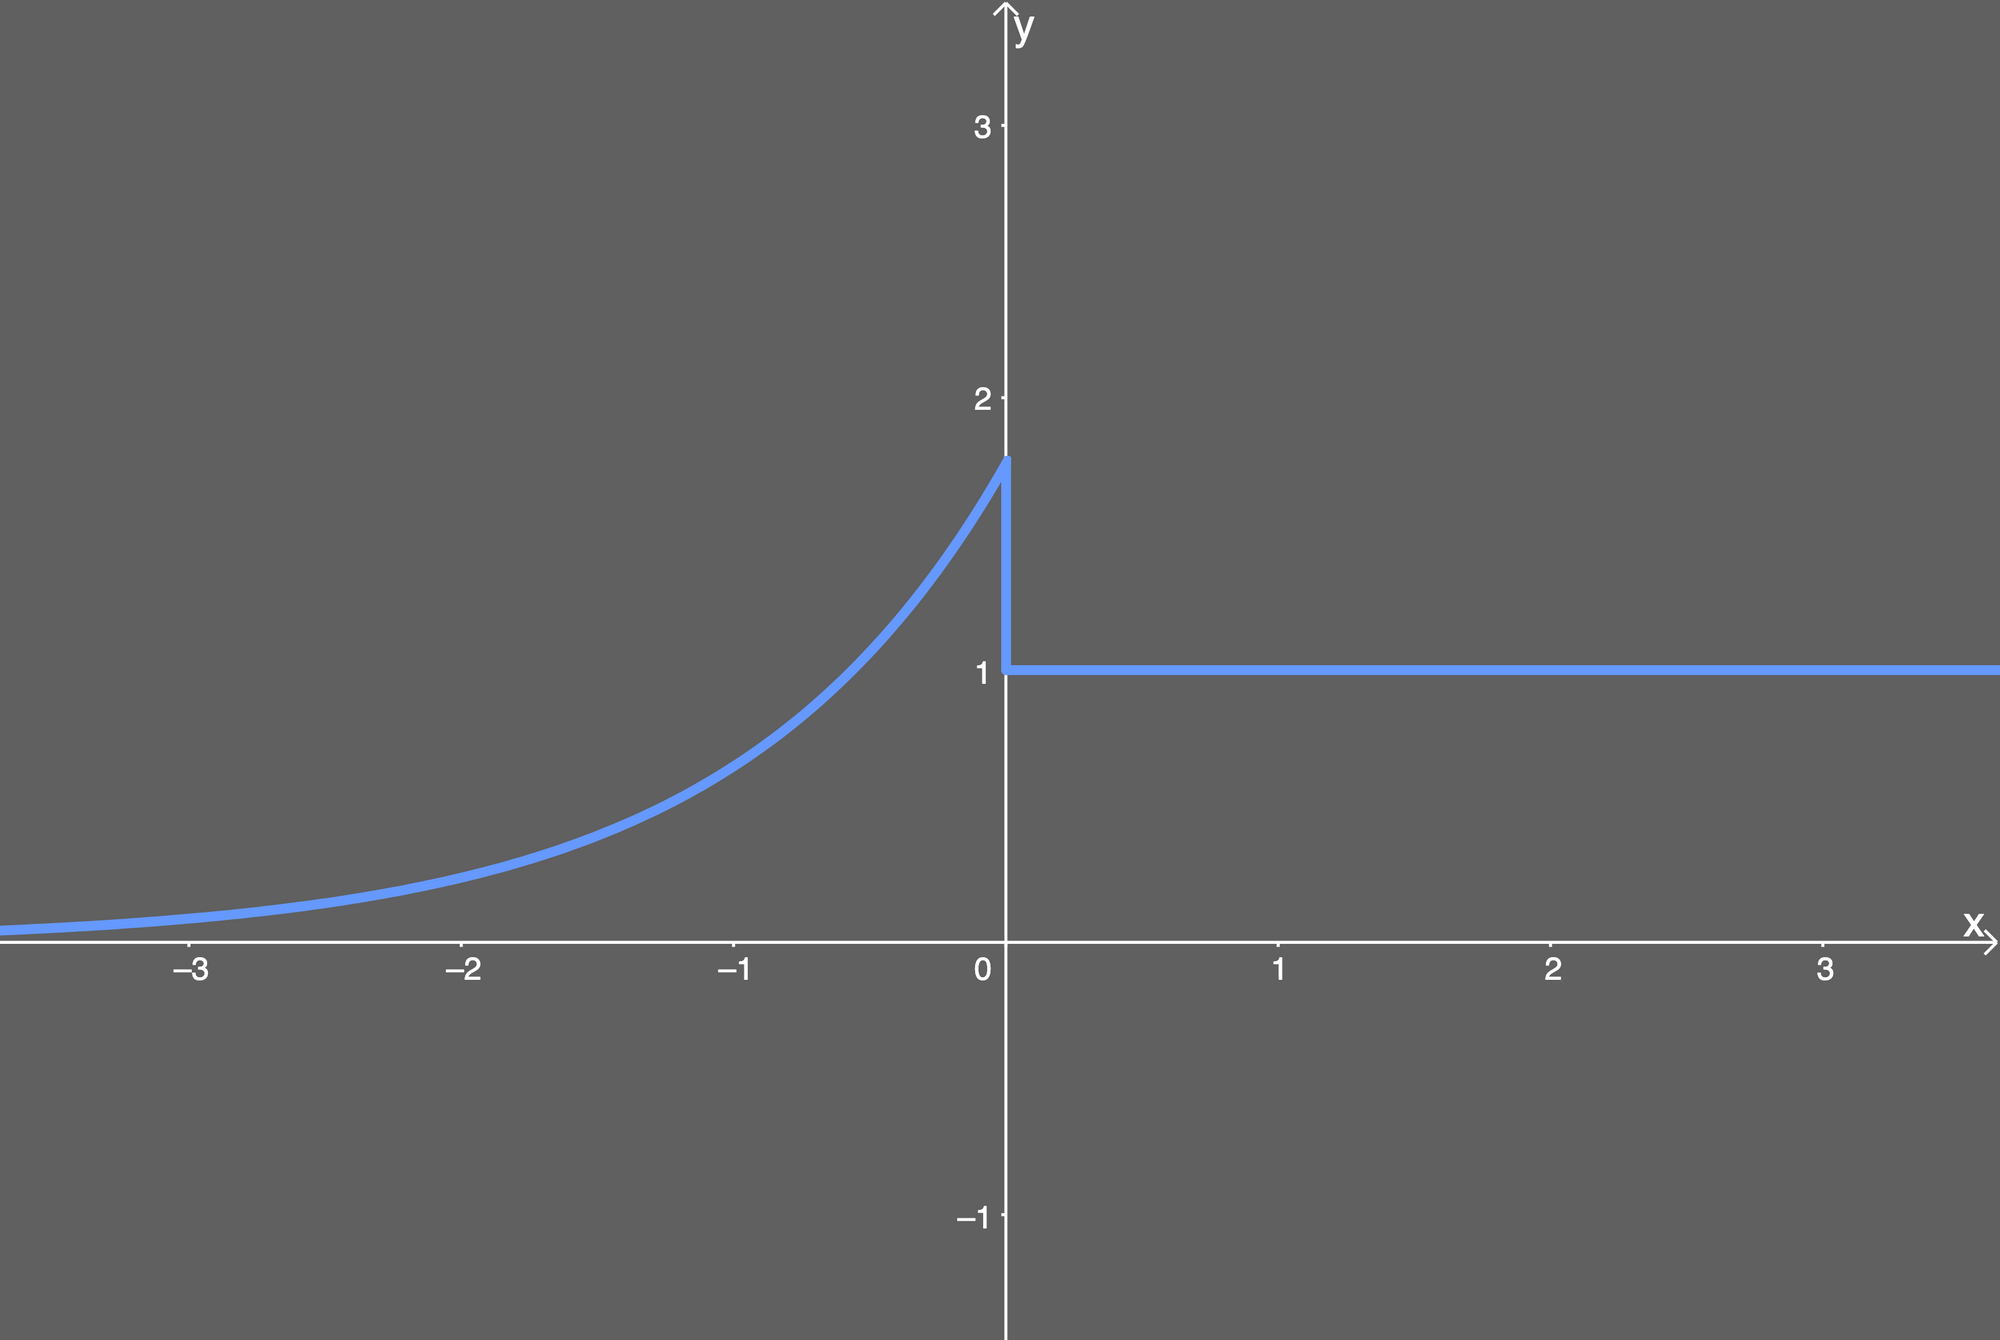 the selu activation function differentiated and plotted